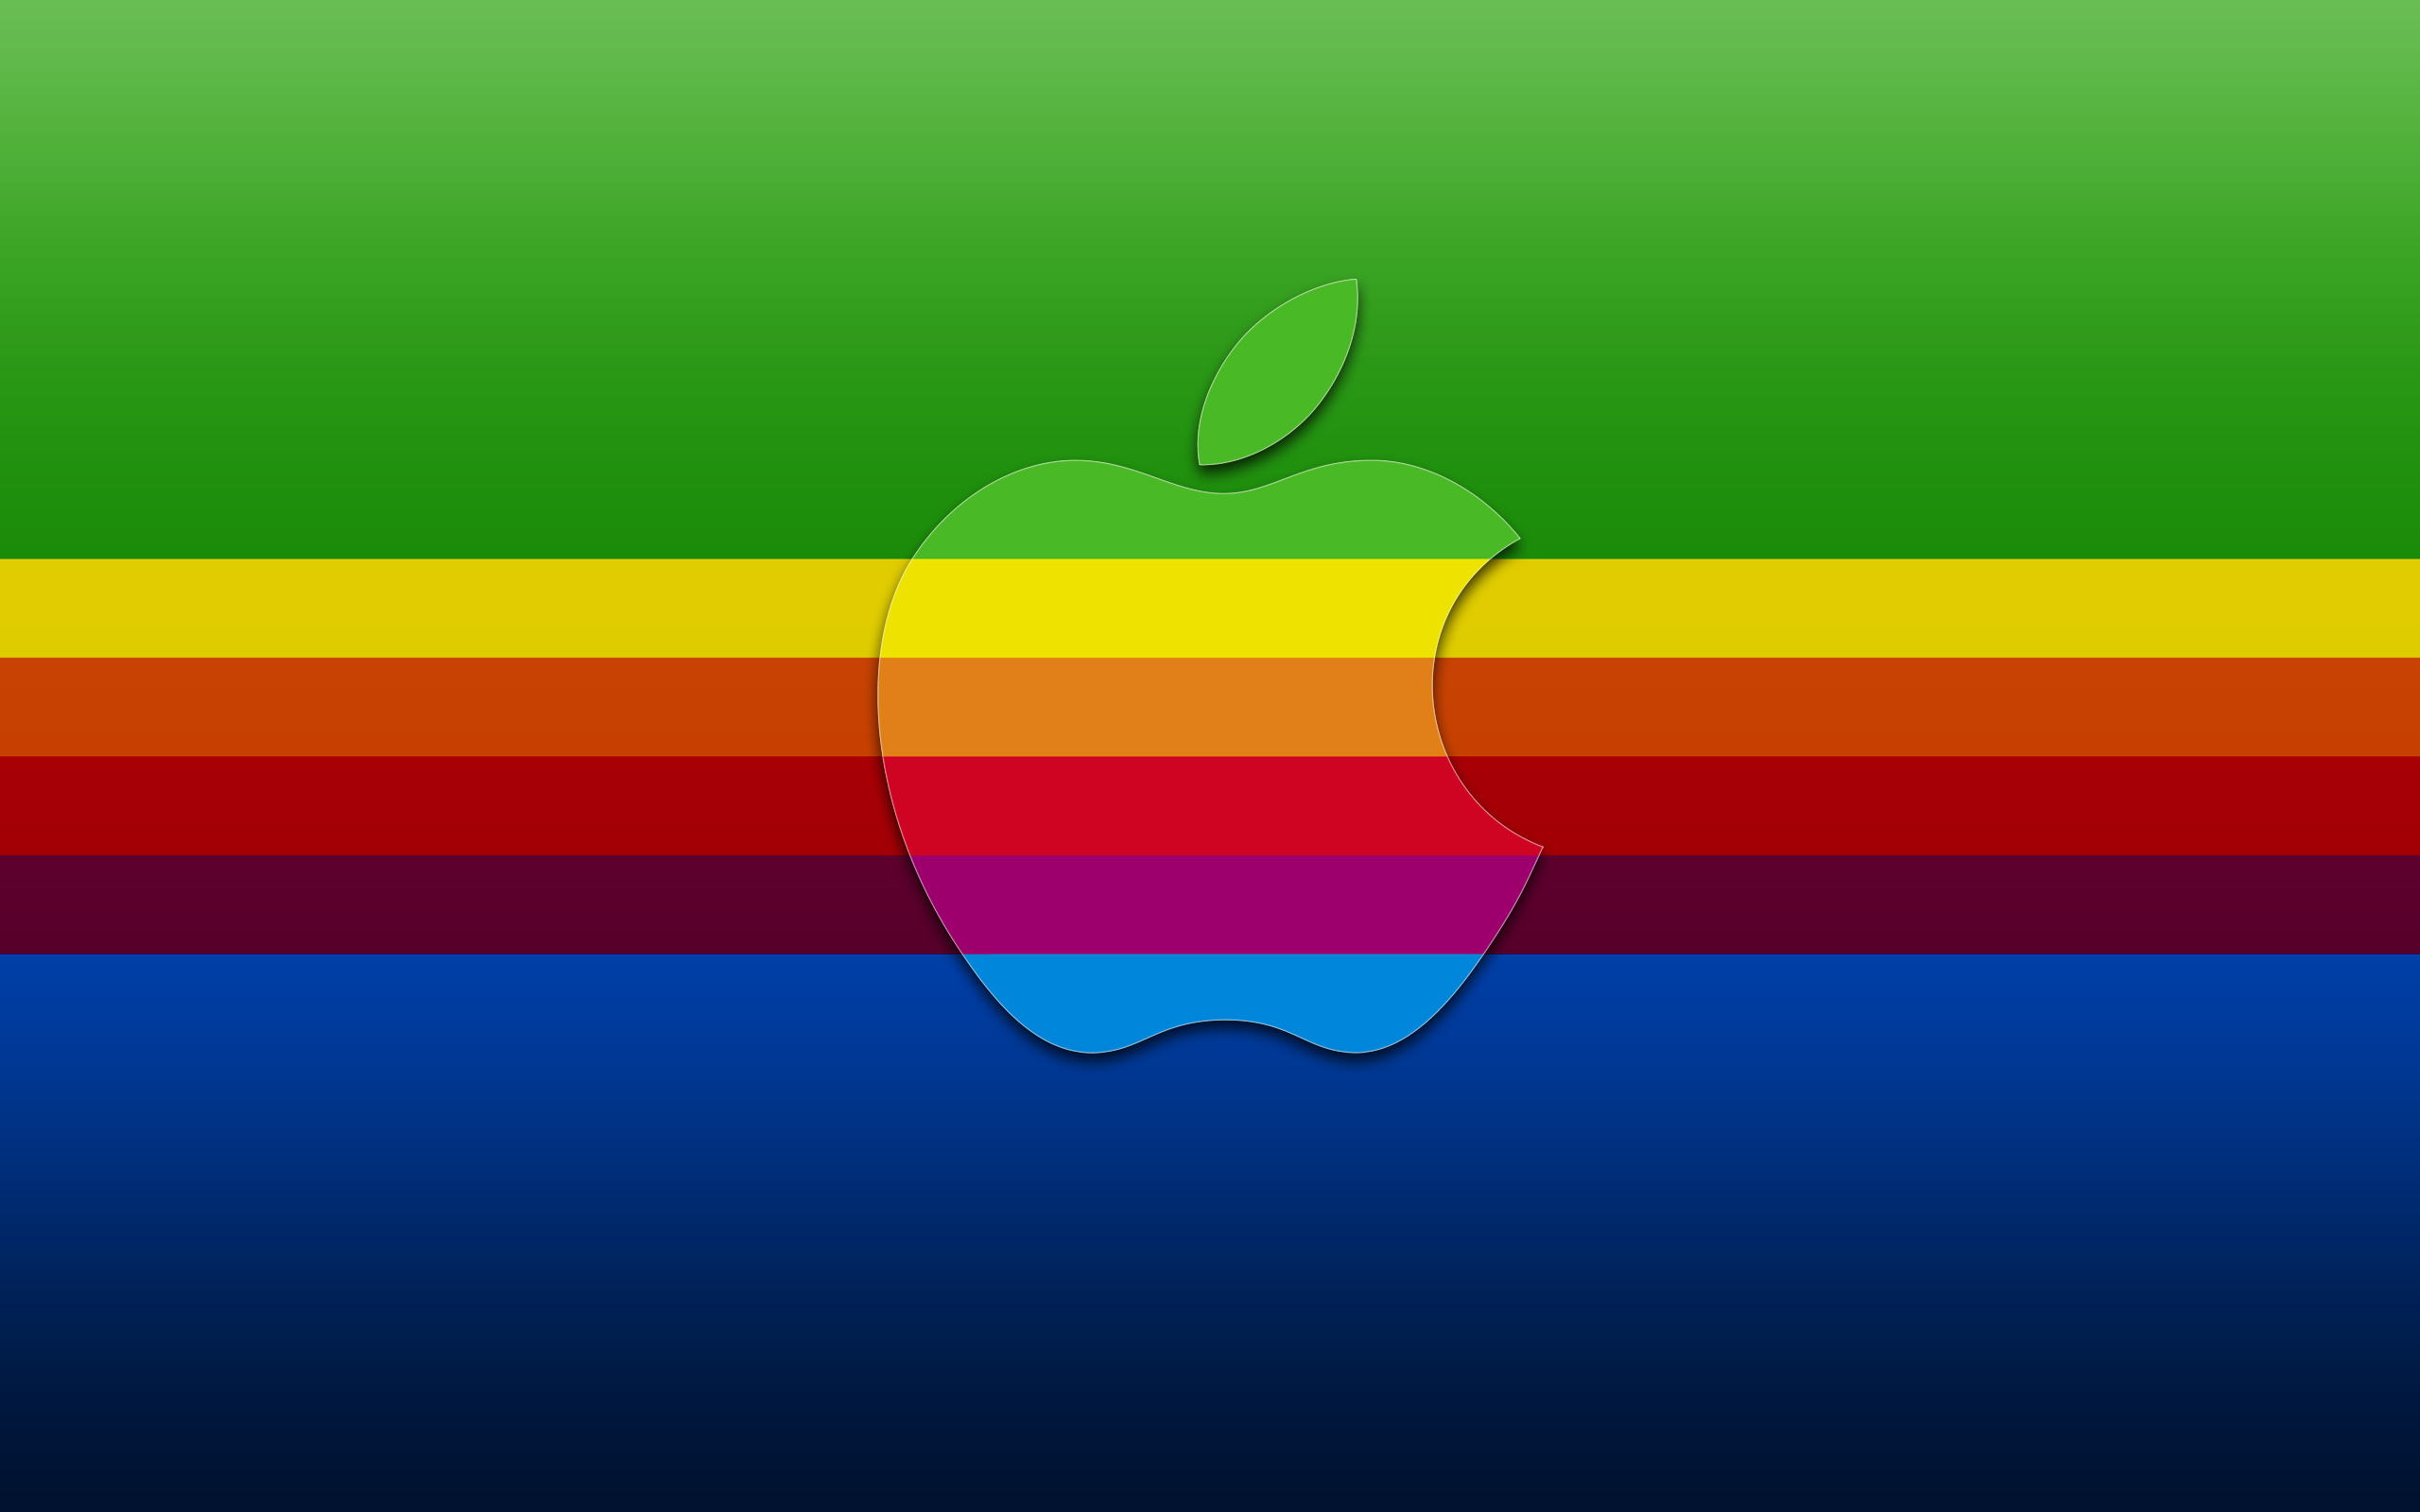 Apple in Colors 102.82 Kb